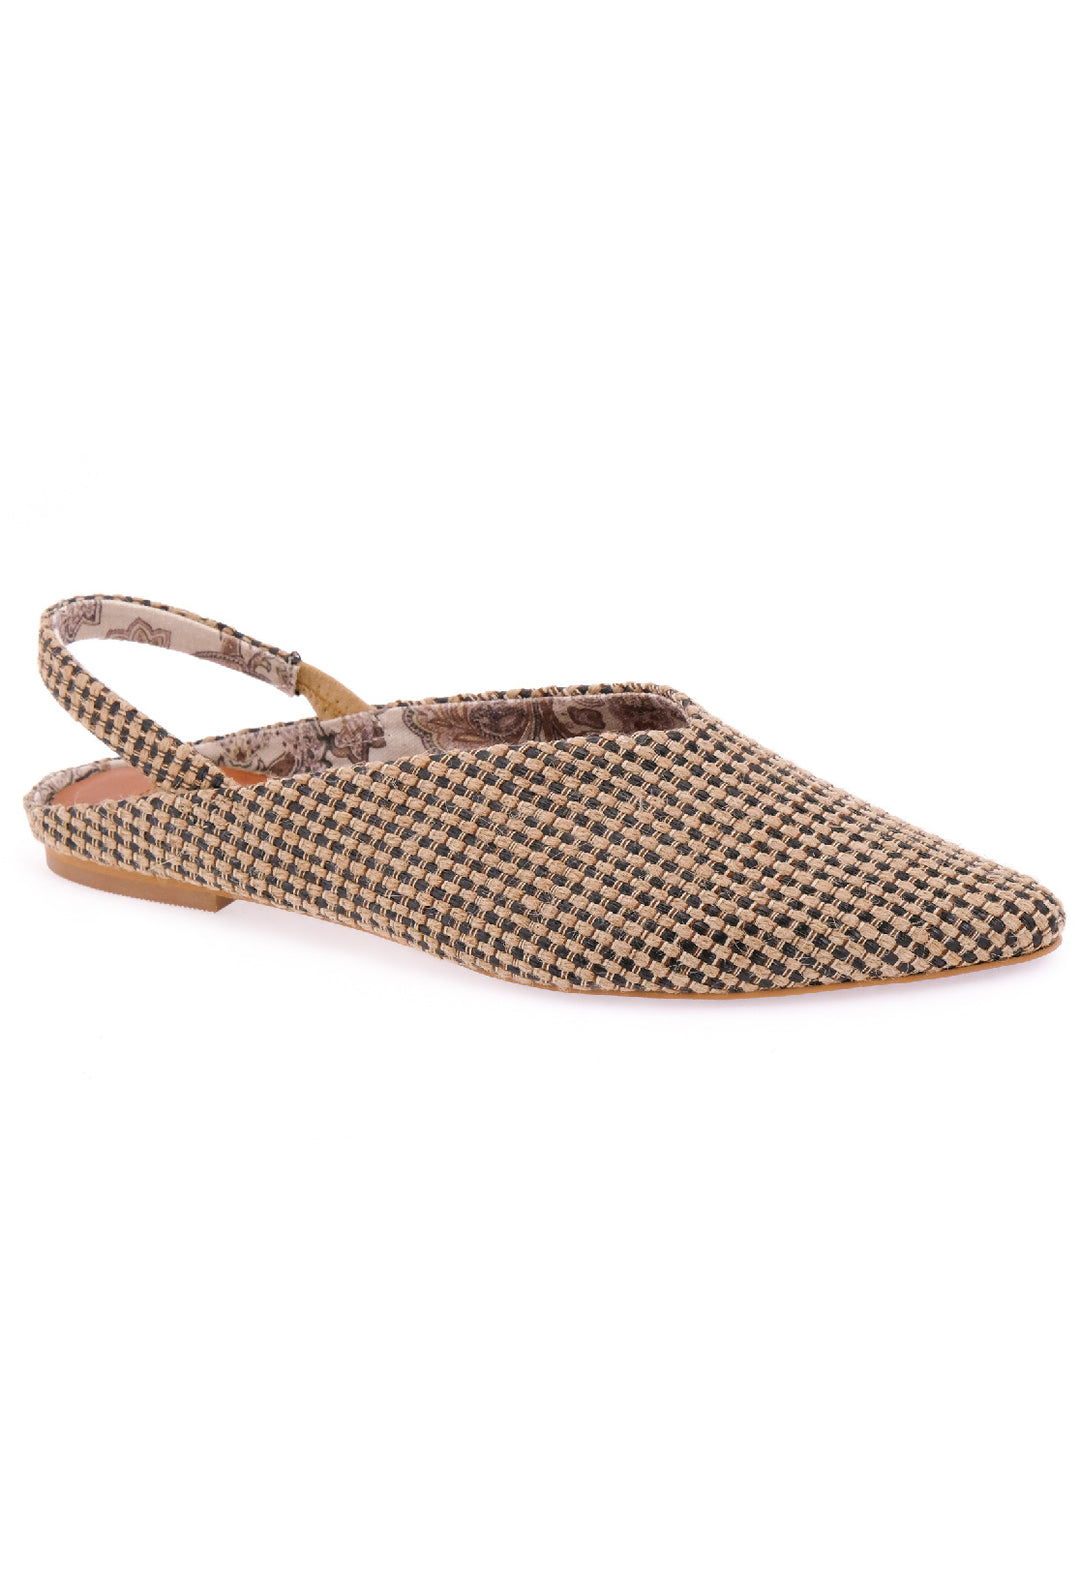 Heather Slingback Jute Fabric Vegan Flats Master